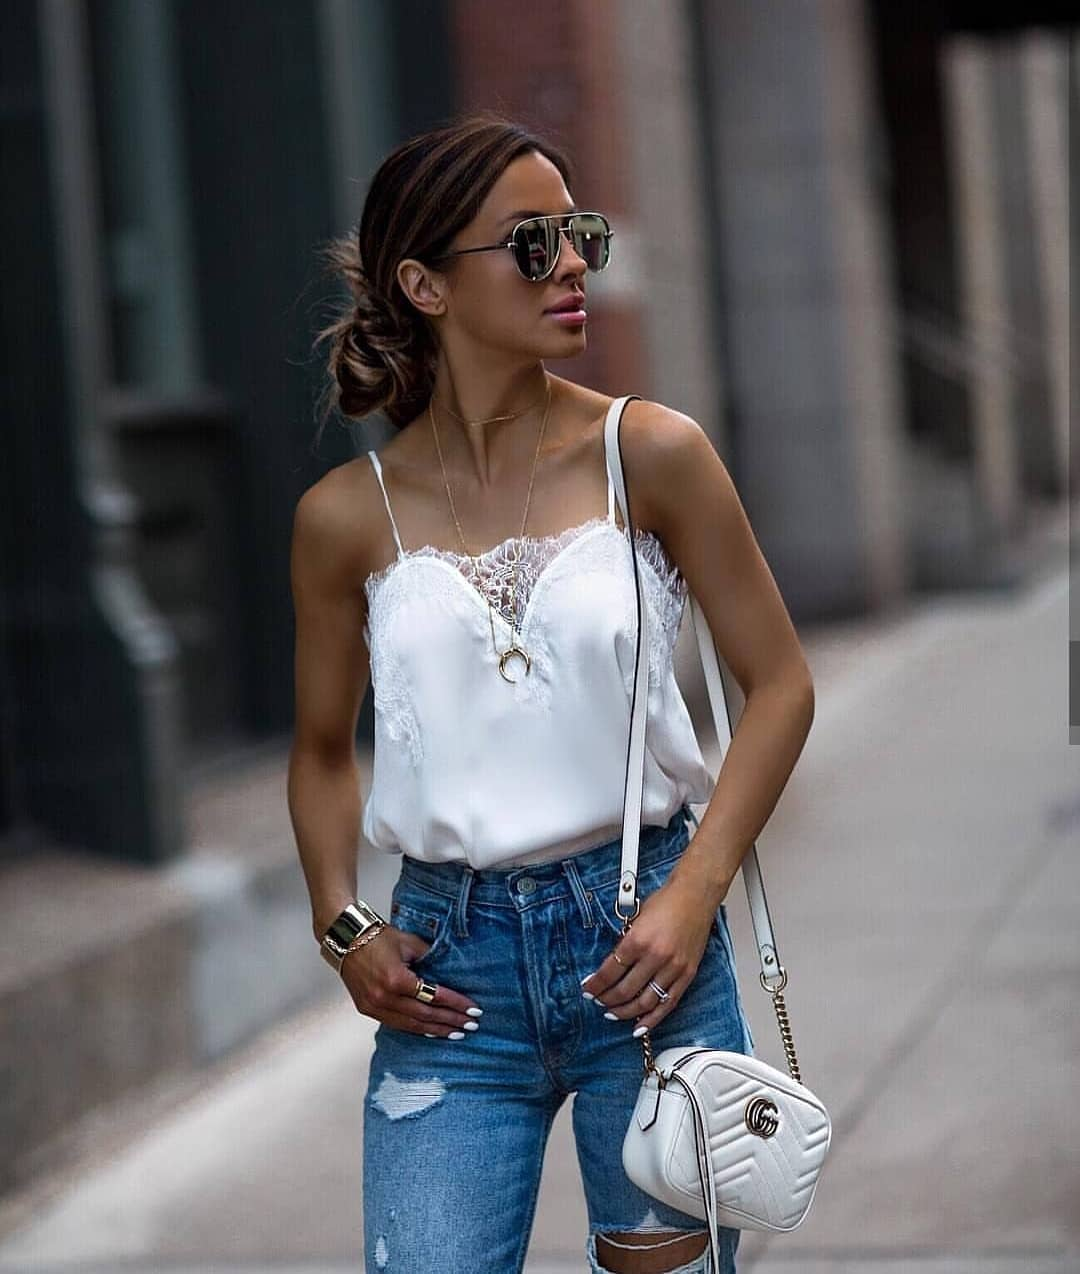 White Silk Slip Tank Top With Lace Details Tucked In Blue Jeans For Summer 2020